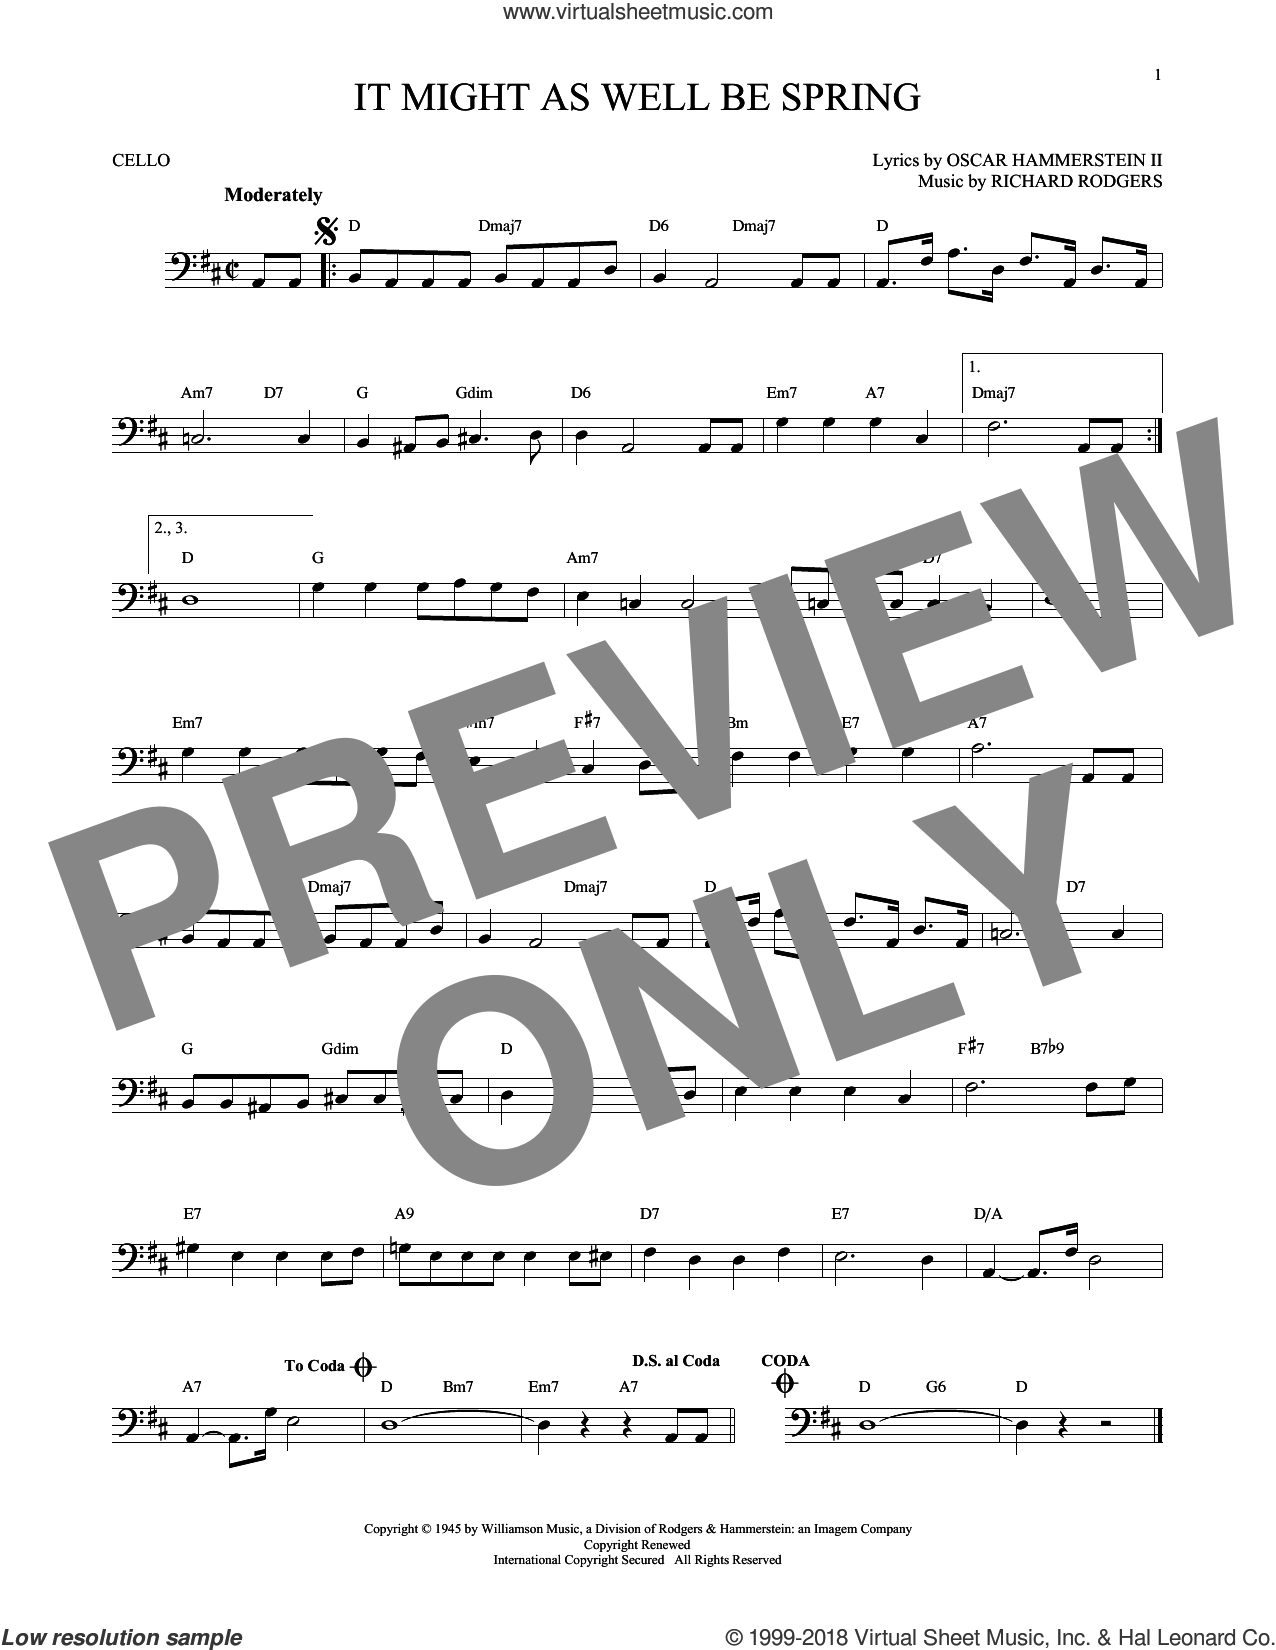 It Might As Well Be Spring sheet music for cello solo by Richard Rodgers, Rodgers & Hammerstein and Oscar II Hammerstein. Score Image Preview.